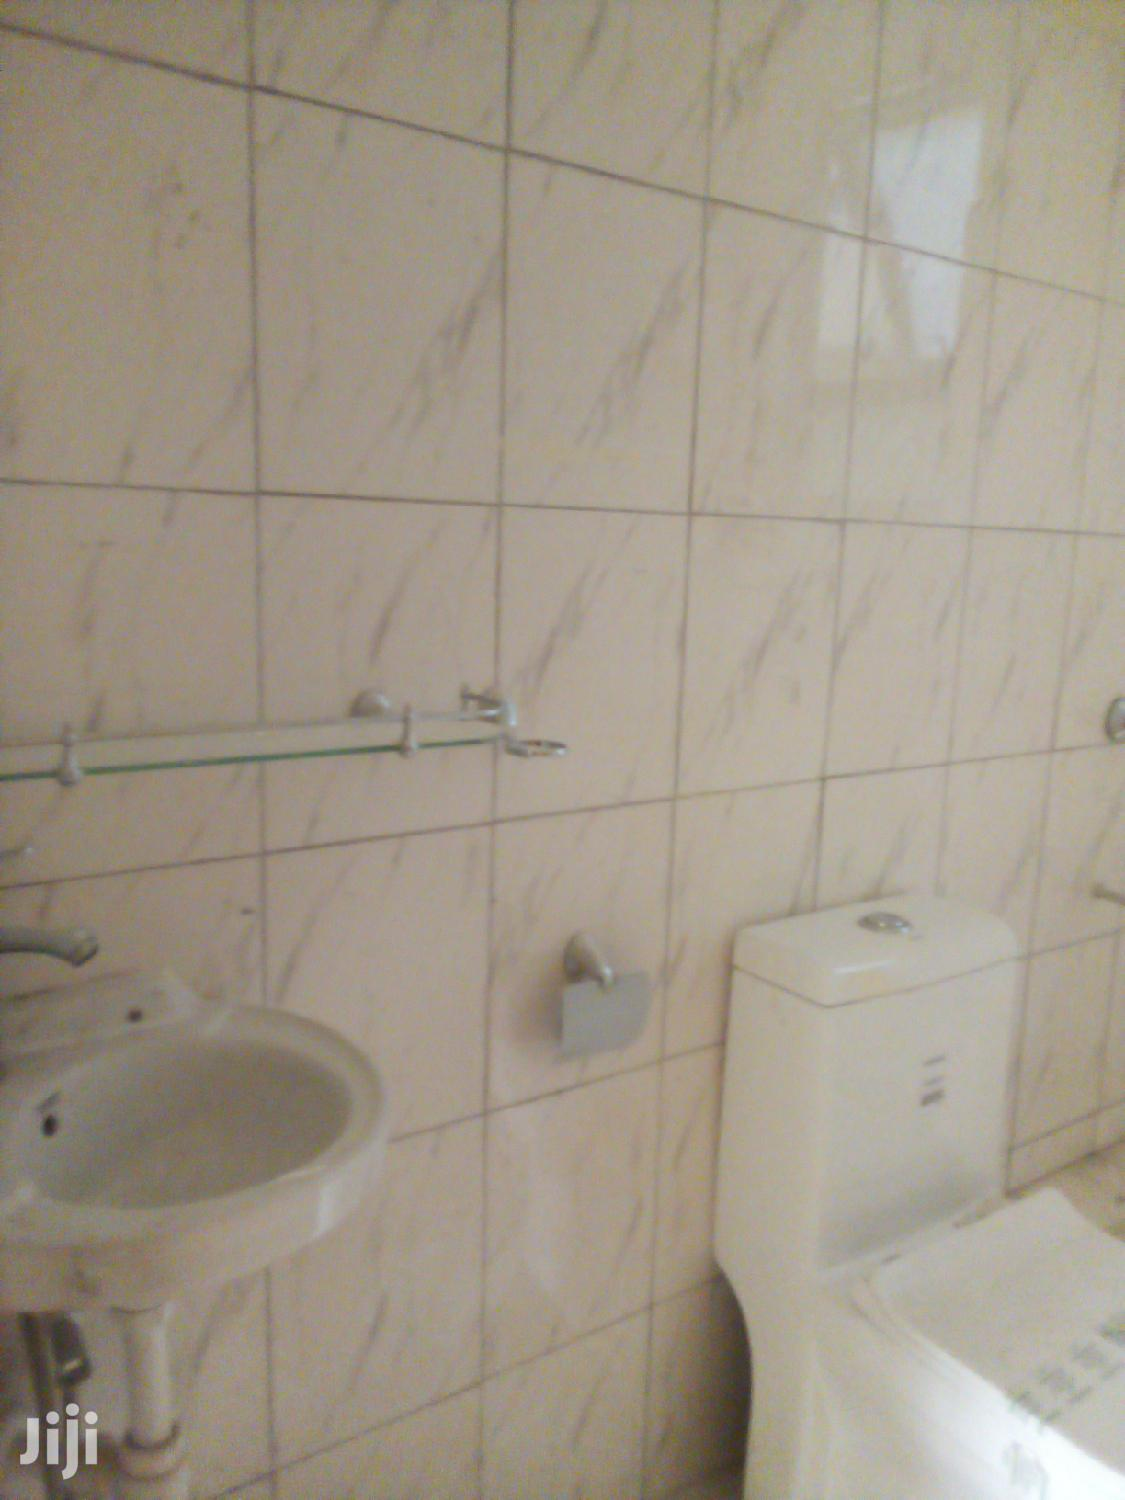 Executive One Bedroom Apartment to Let. | Houses & Apartments For Rent for sale in Lavington, Nairobi, Kenya